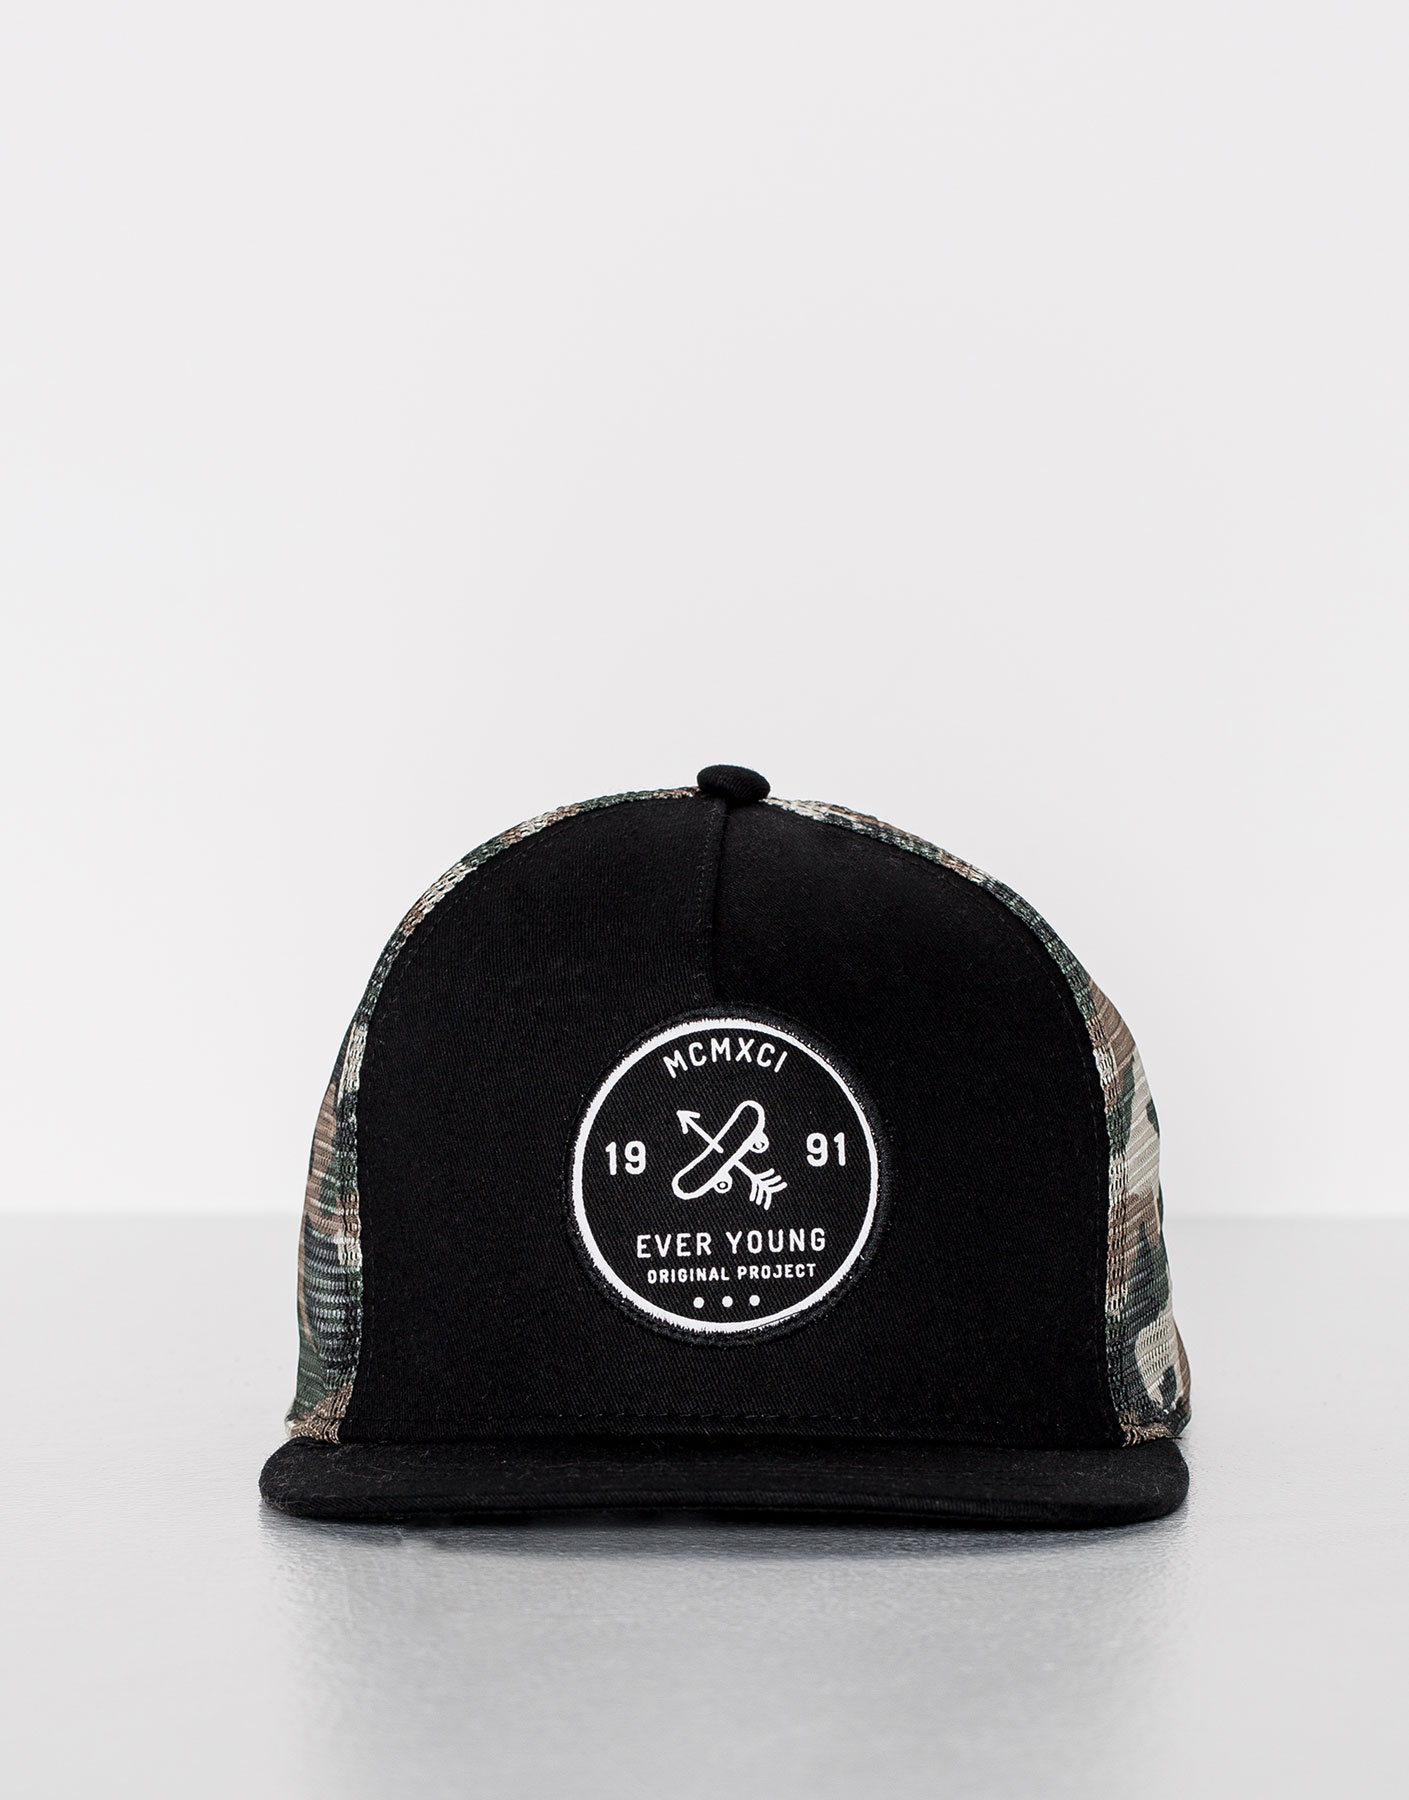 Gorra camuflatge - ever young